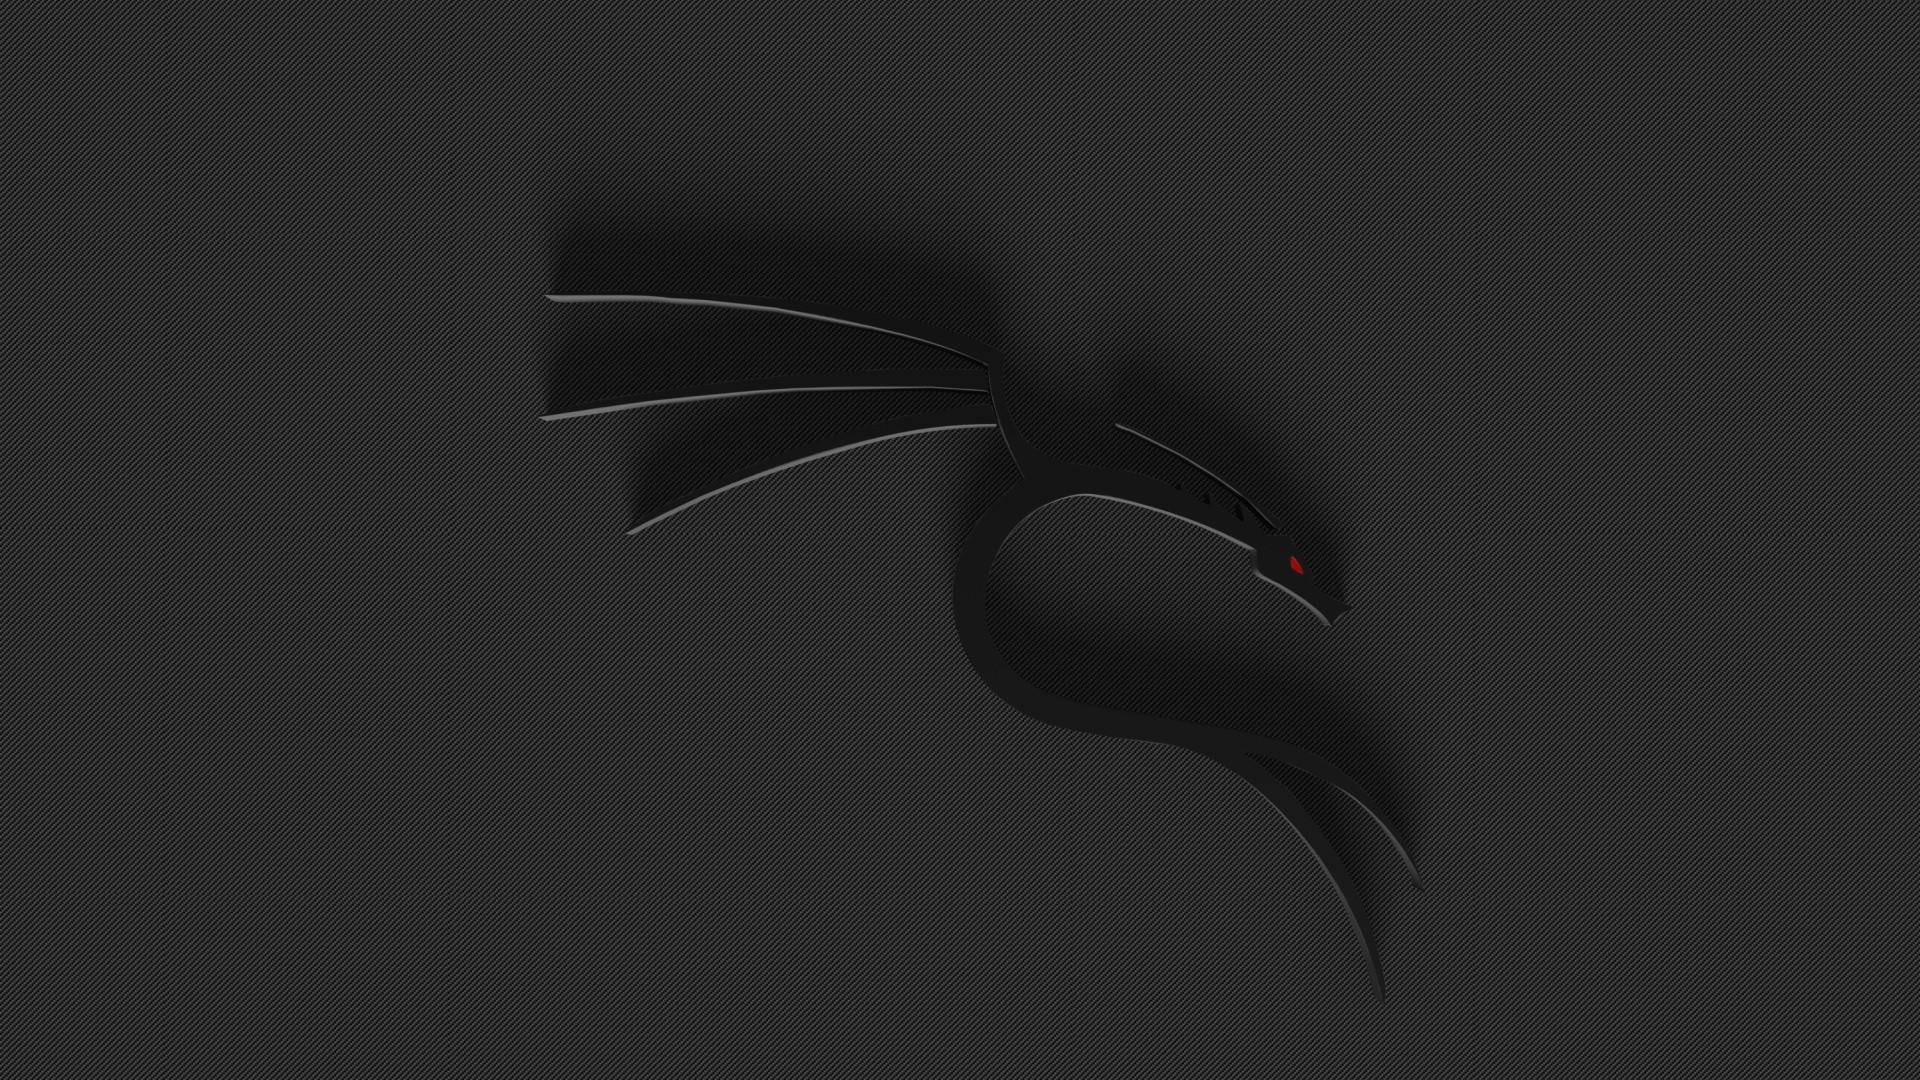 Download kali linux wallpapers free grepitout - Kali linux wallpaper download ...